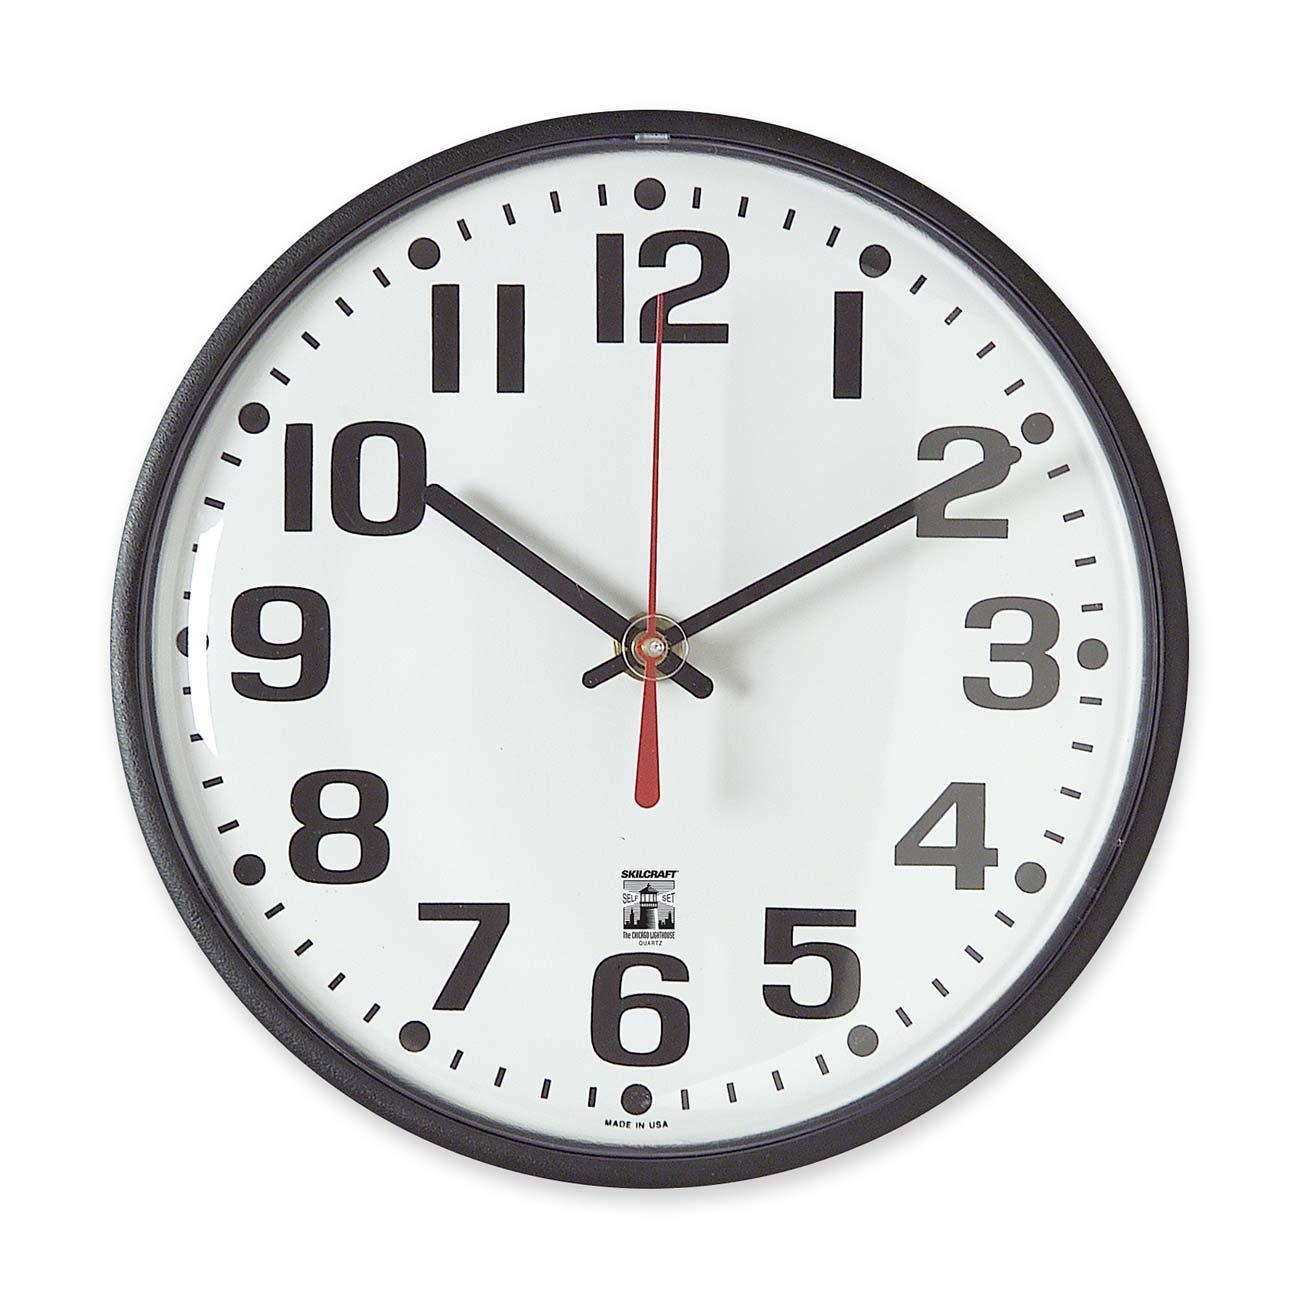 Skilcraft Skilcraft Black Body Selfset Wall Clock - Analog - Quartz (NSN5573153)